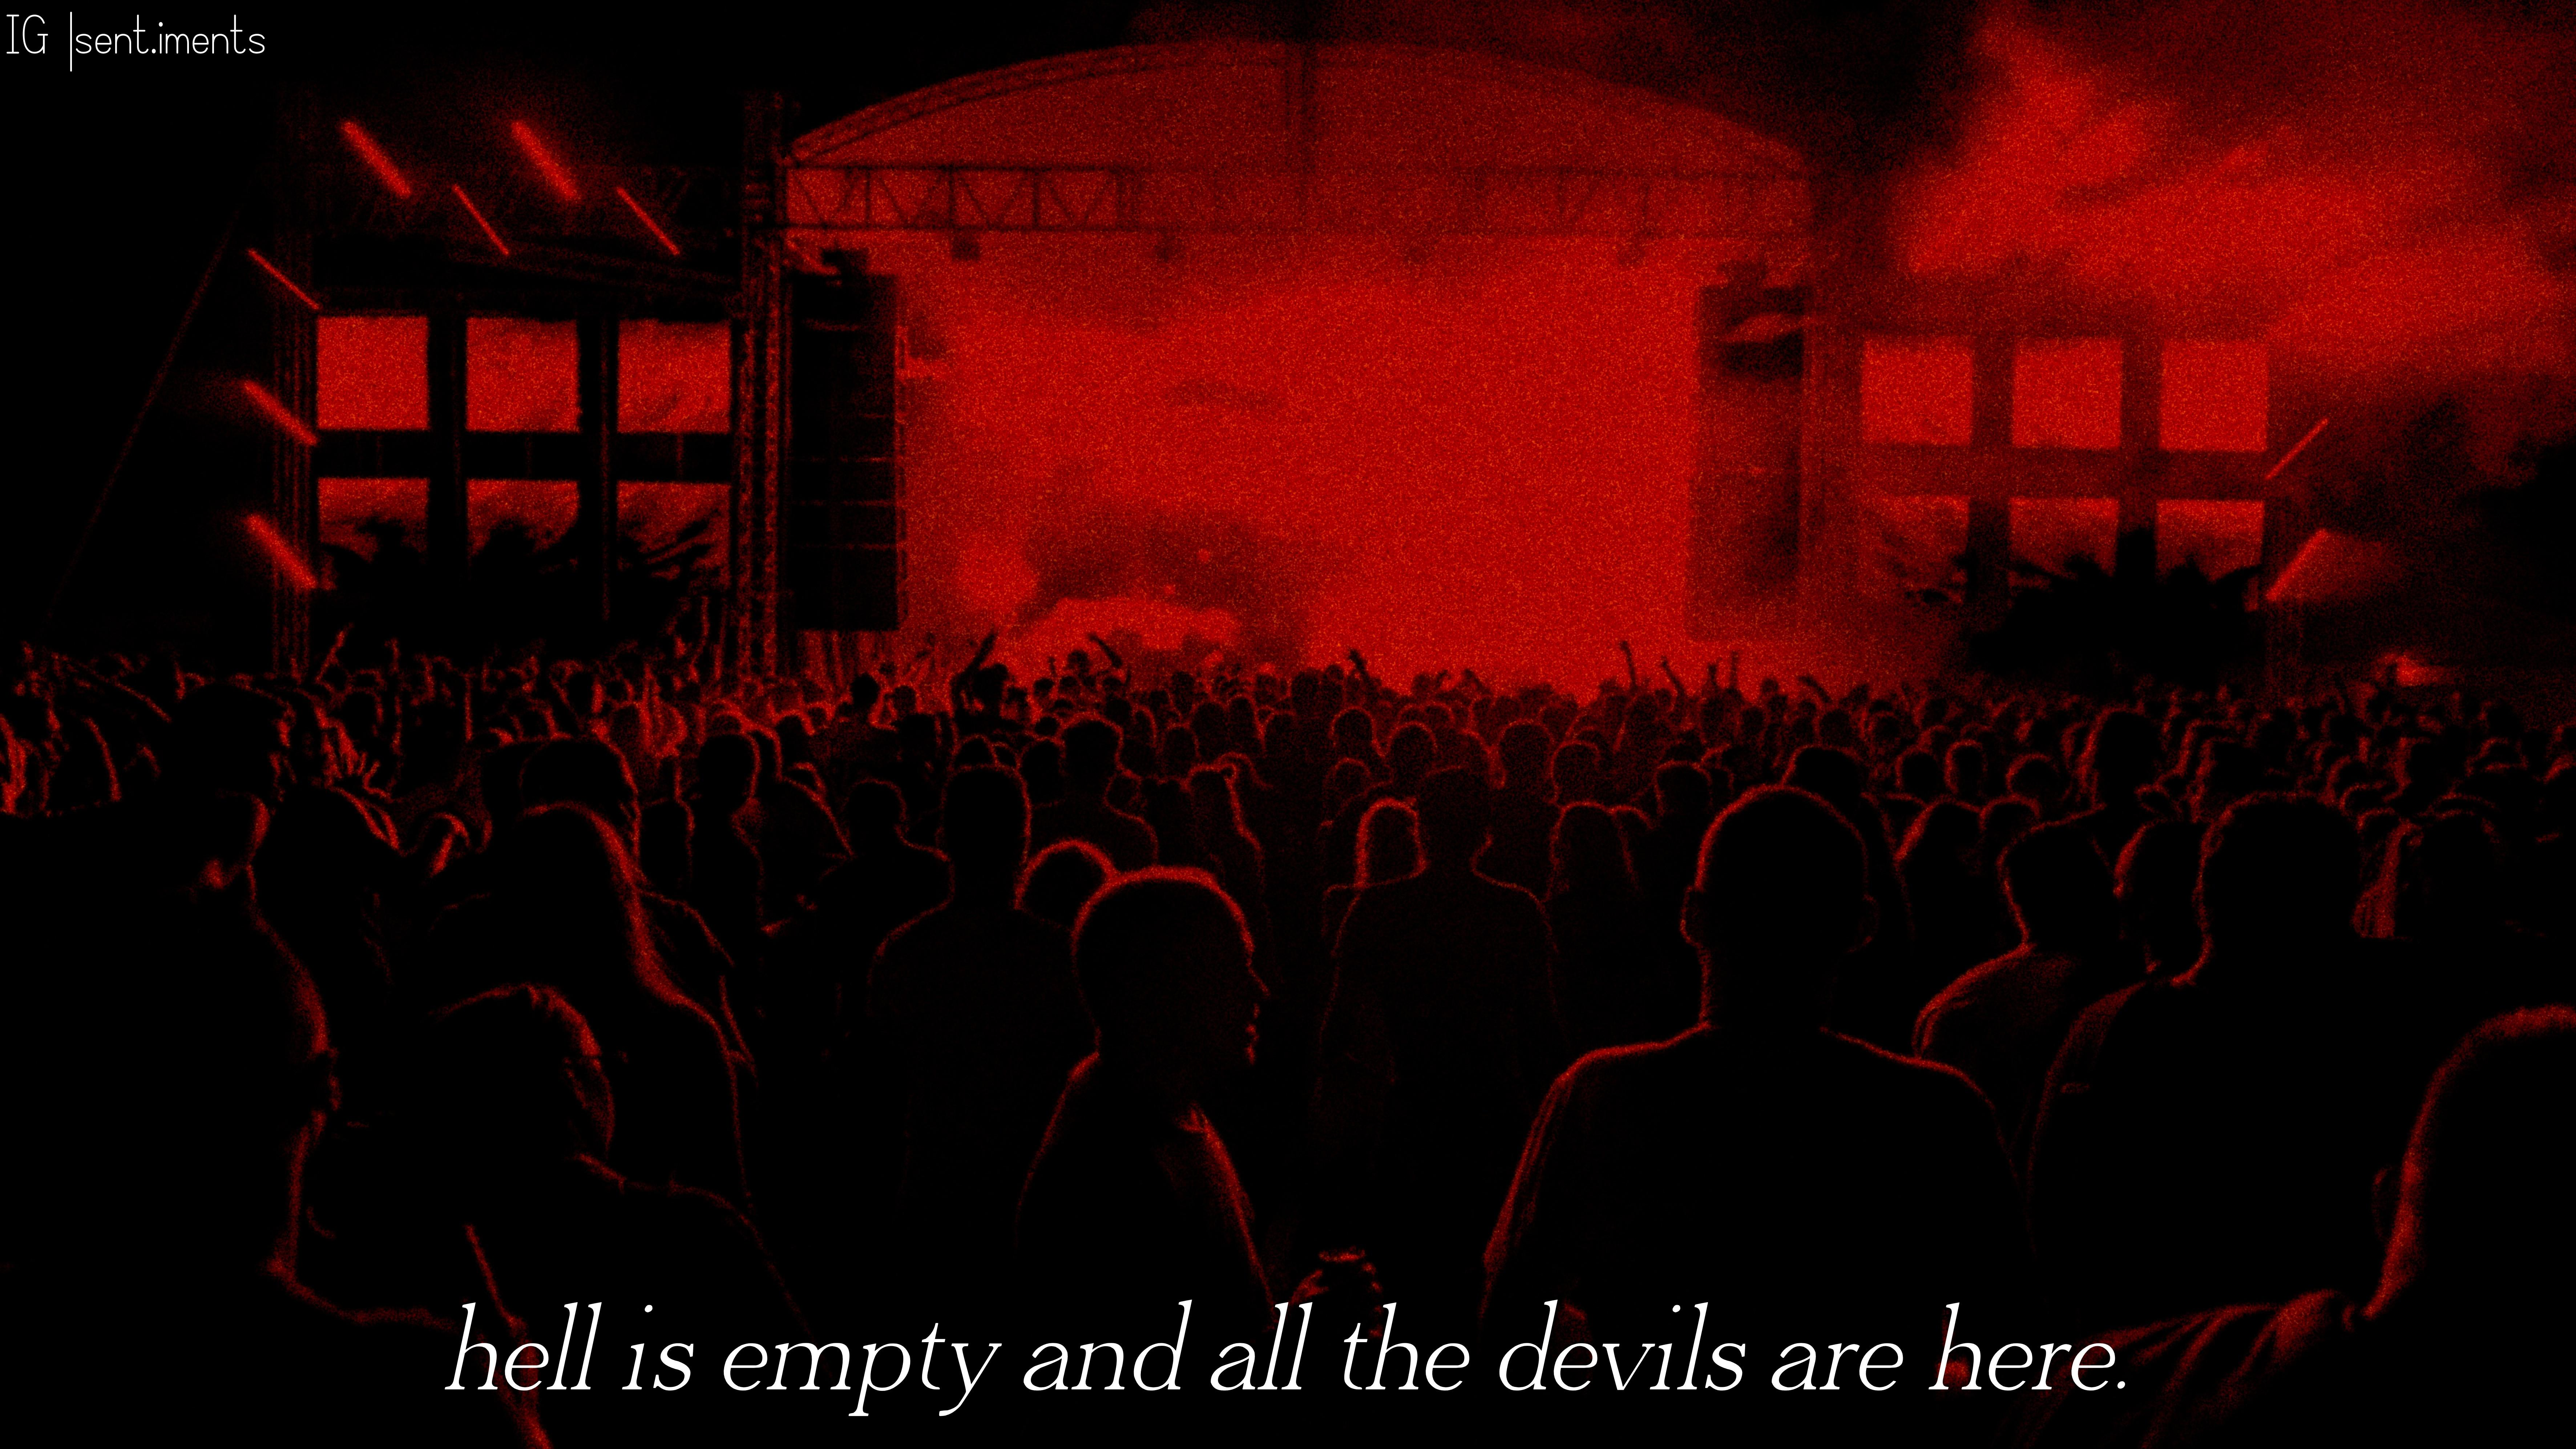 """Hell is empty and all the devils are here."" By William Shakespeare [7090 X 3988]"